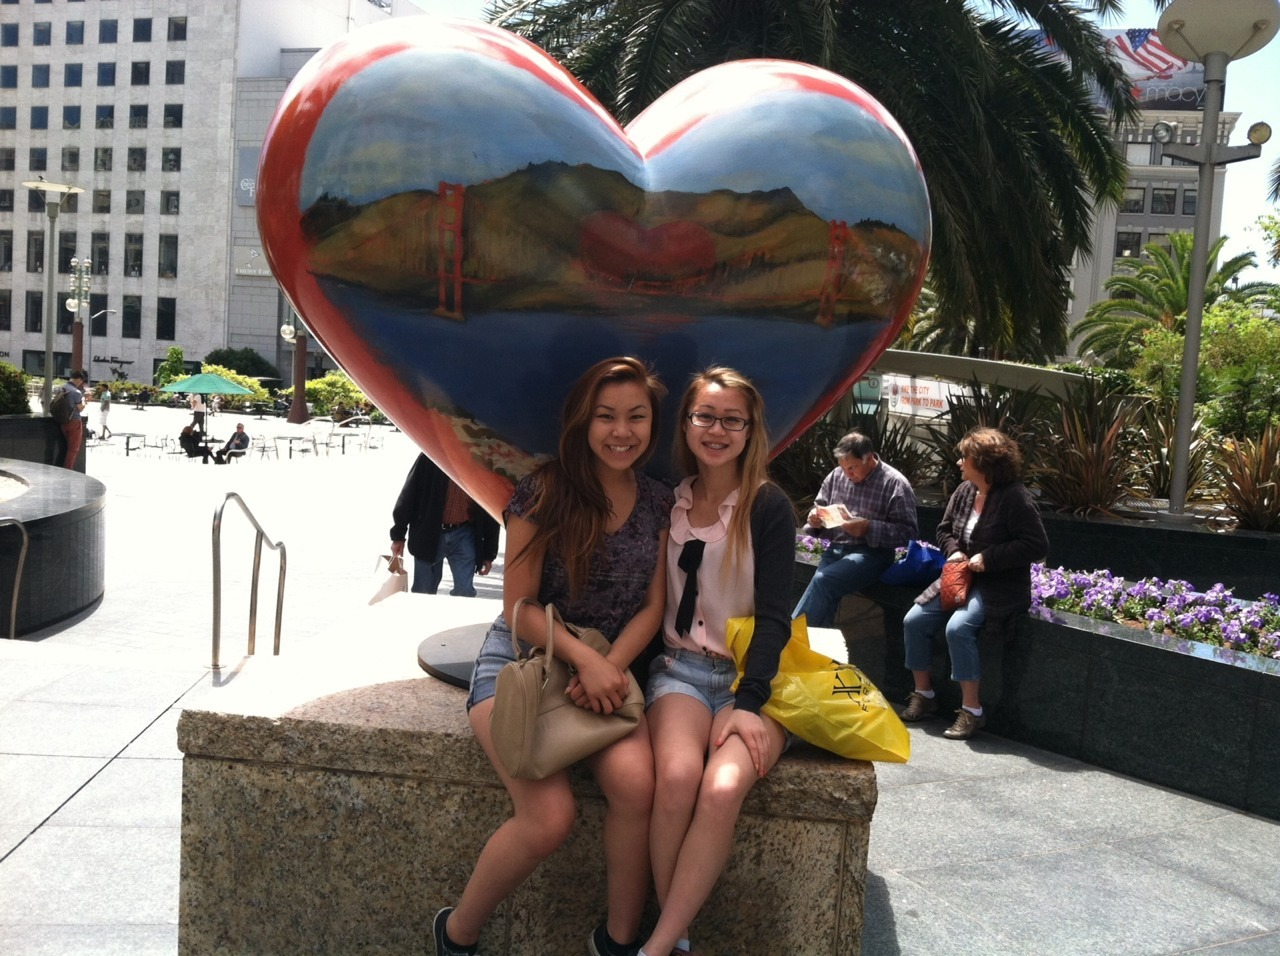 Went to SF for senior ditch day with Lisa!